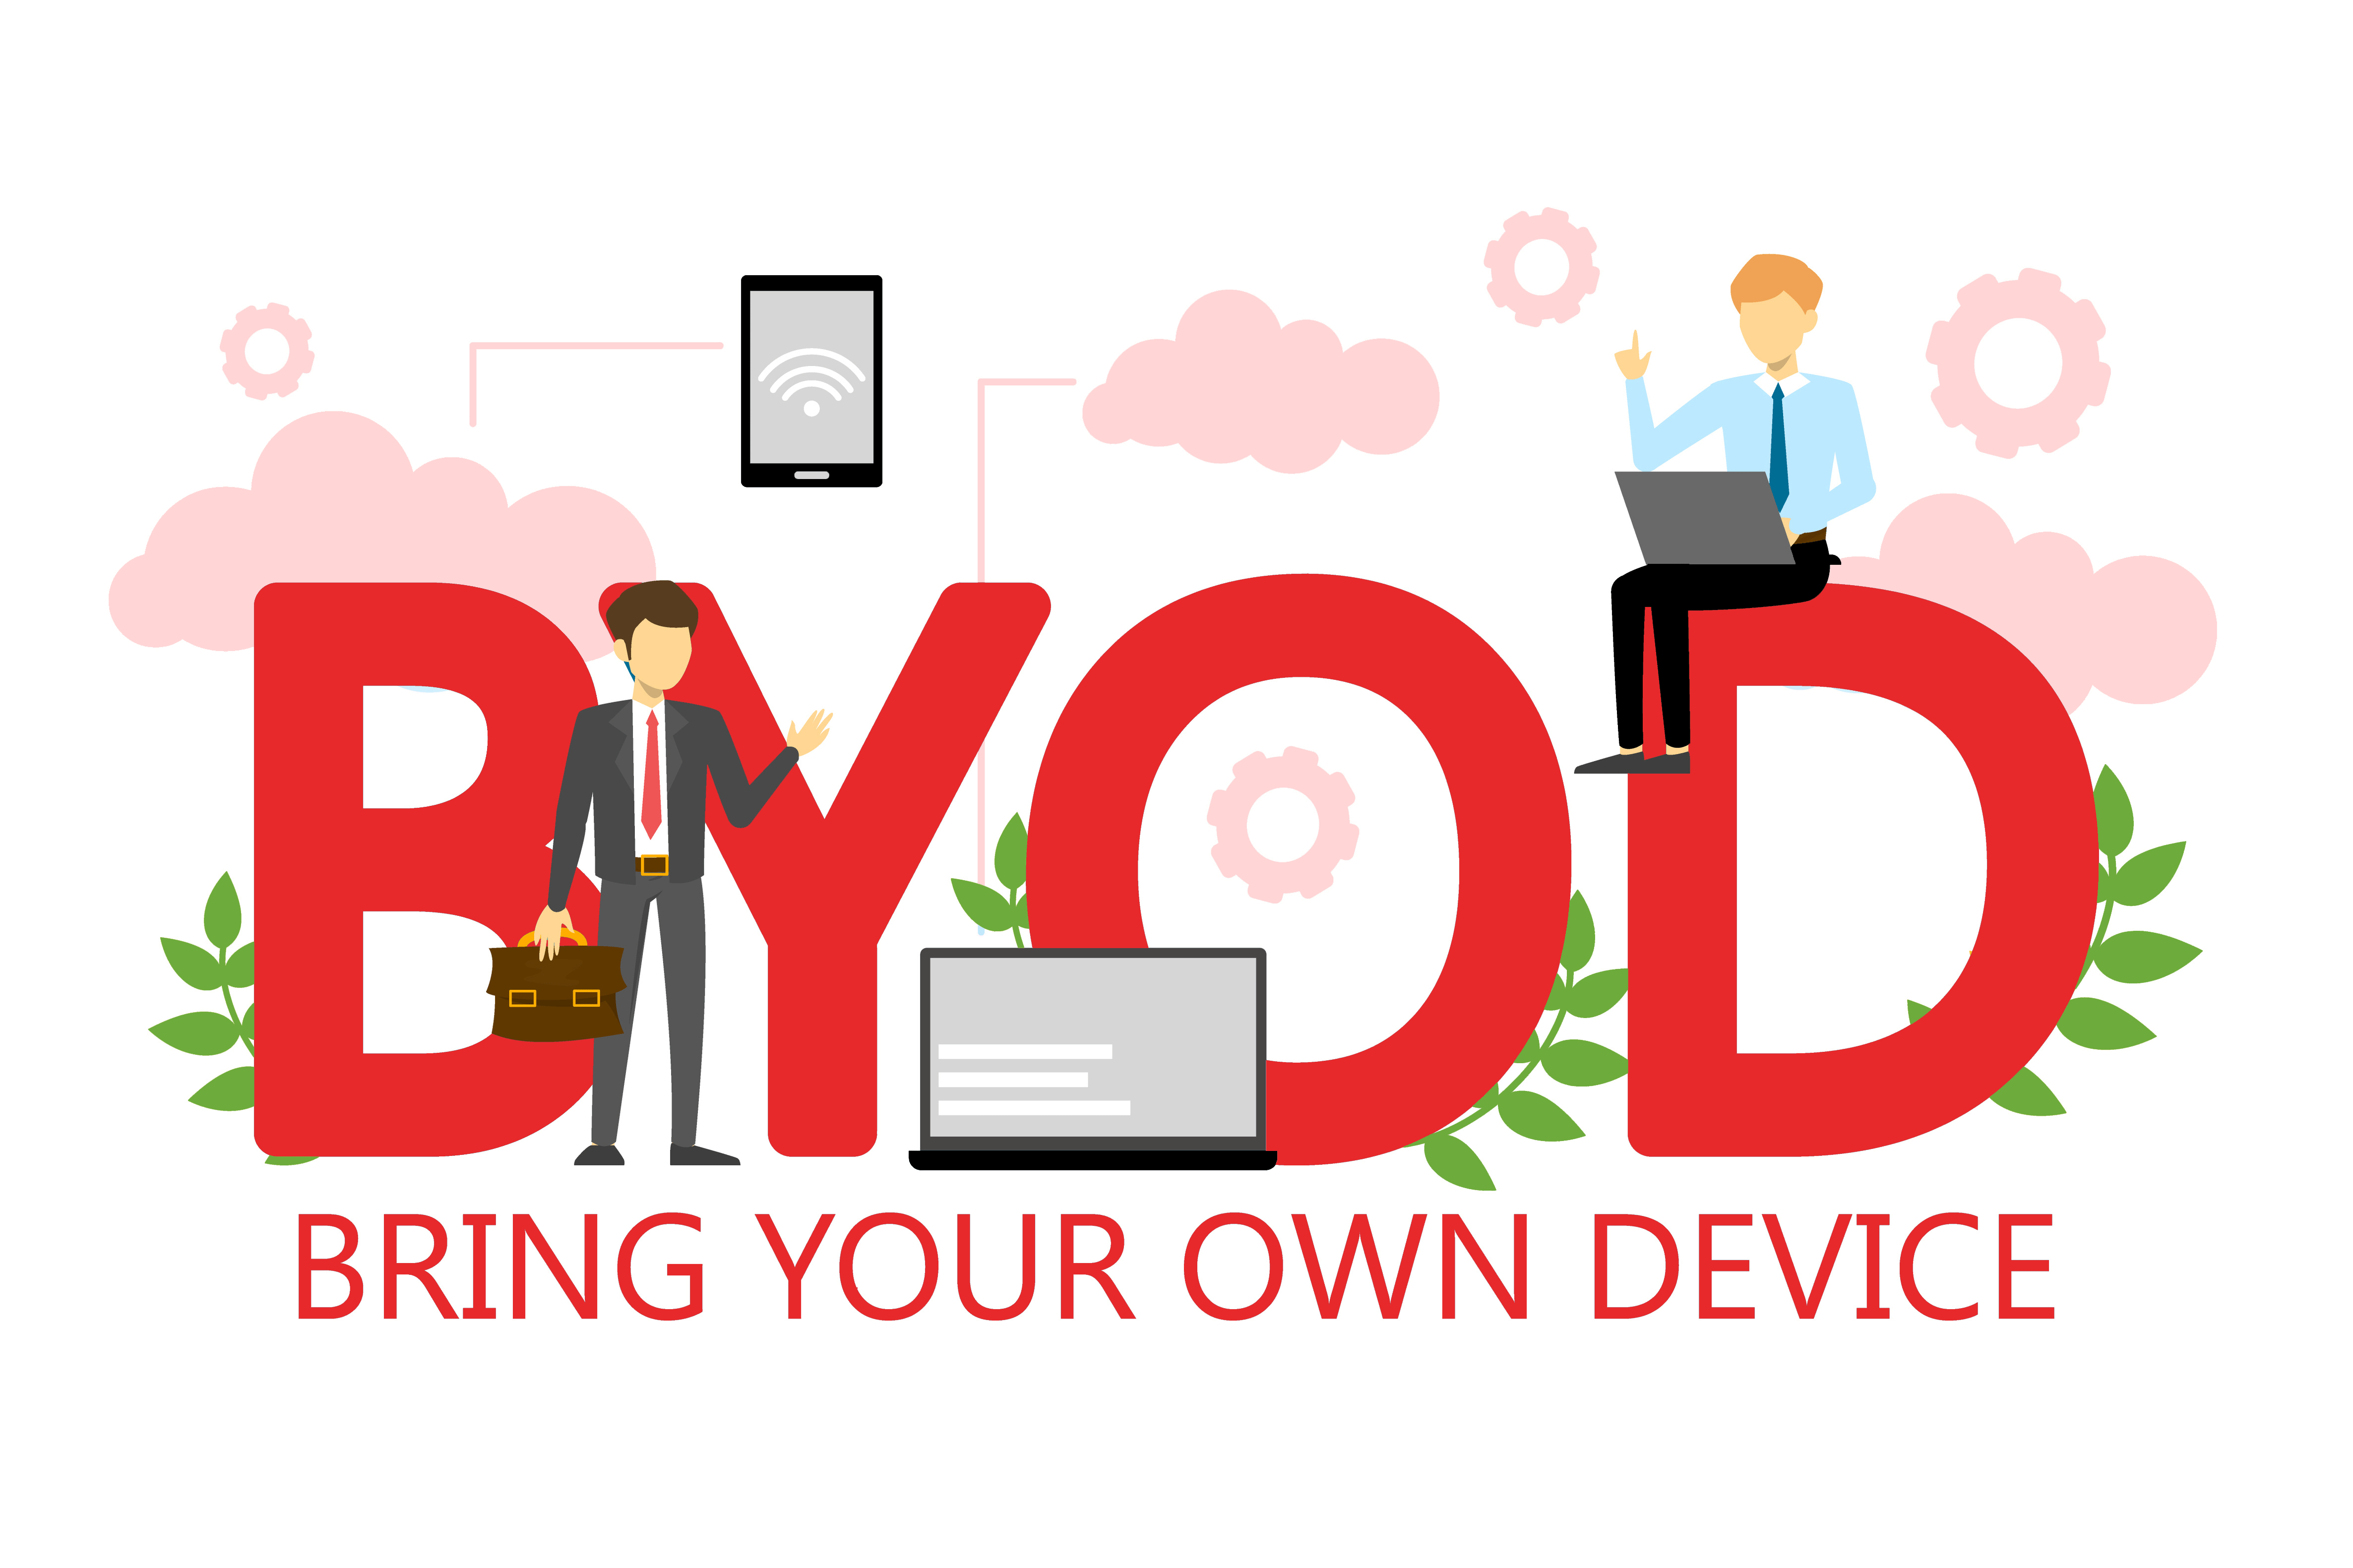 Bring Your Own Device (BYOD): benefits and considerations